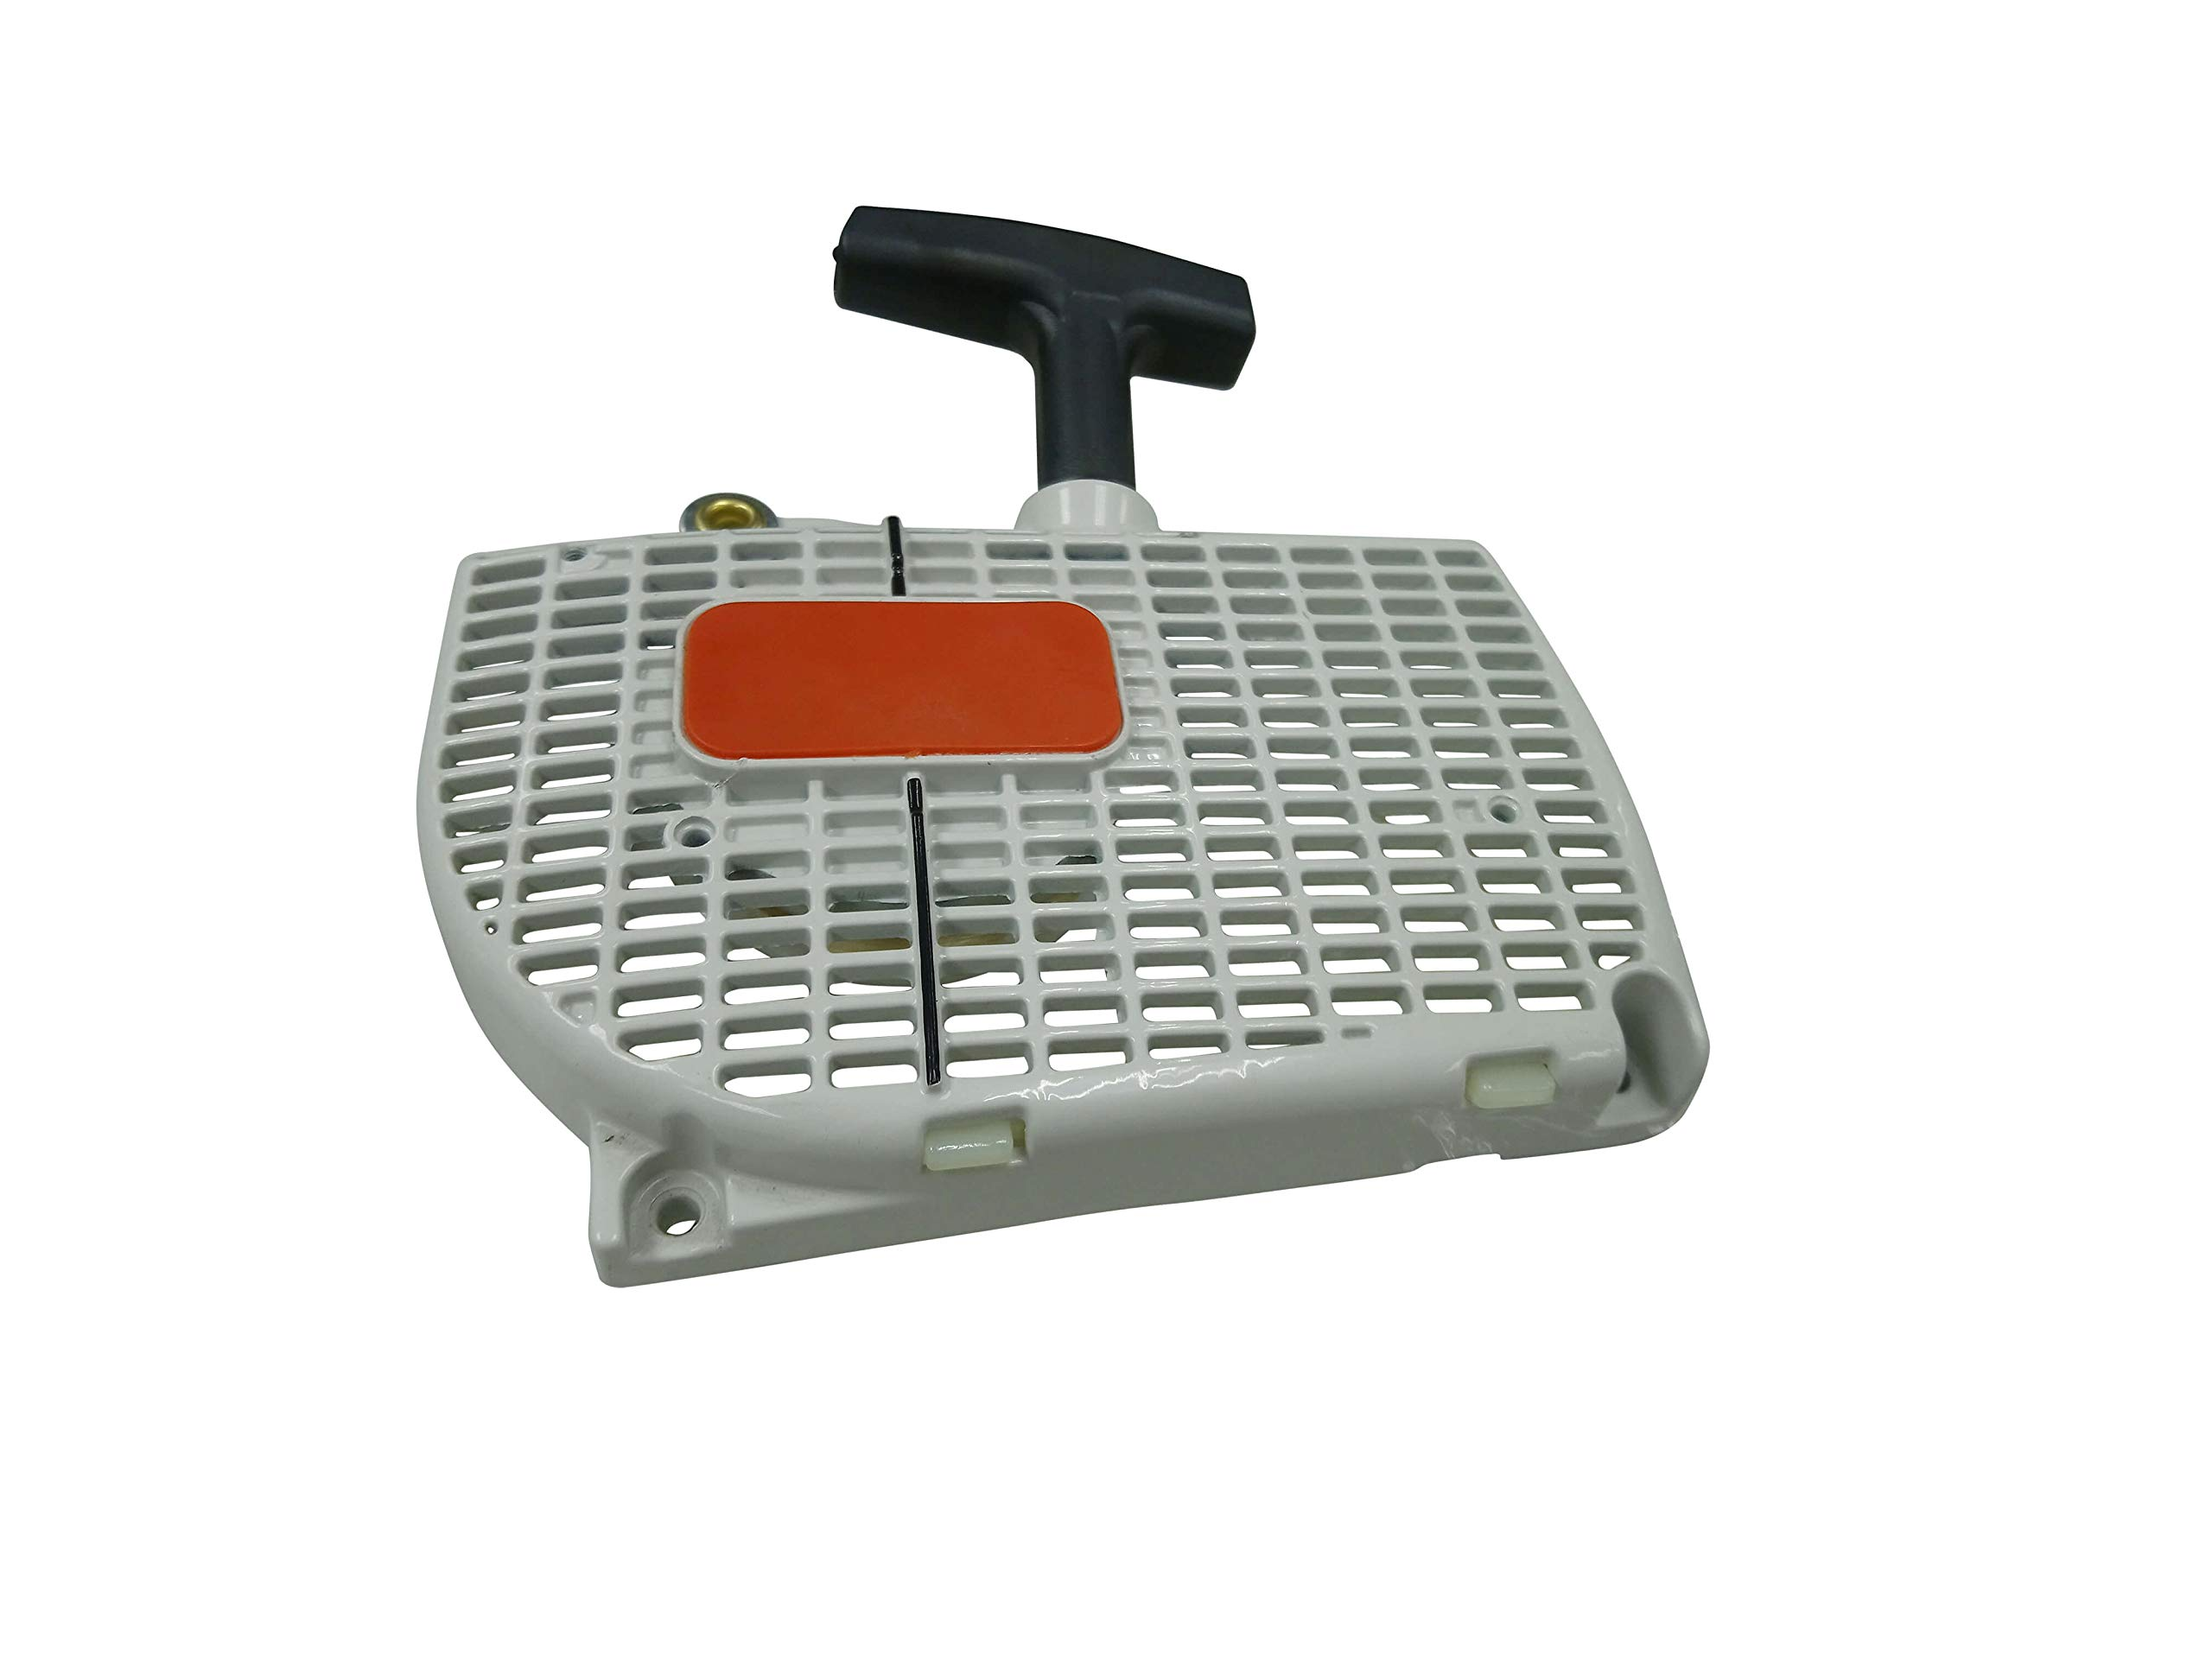 EngineRun Recoil Rewind Pull Start Starter Cover Assembly for Stihl 044 046 MS440 MS460 Chainsaws OEM 11280802104 Ships from The USA 1128-080-2104 by EngineRun